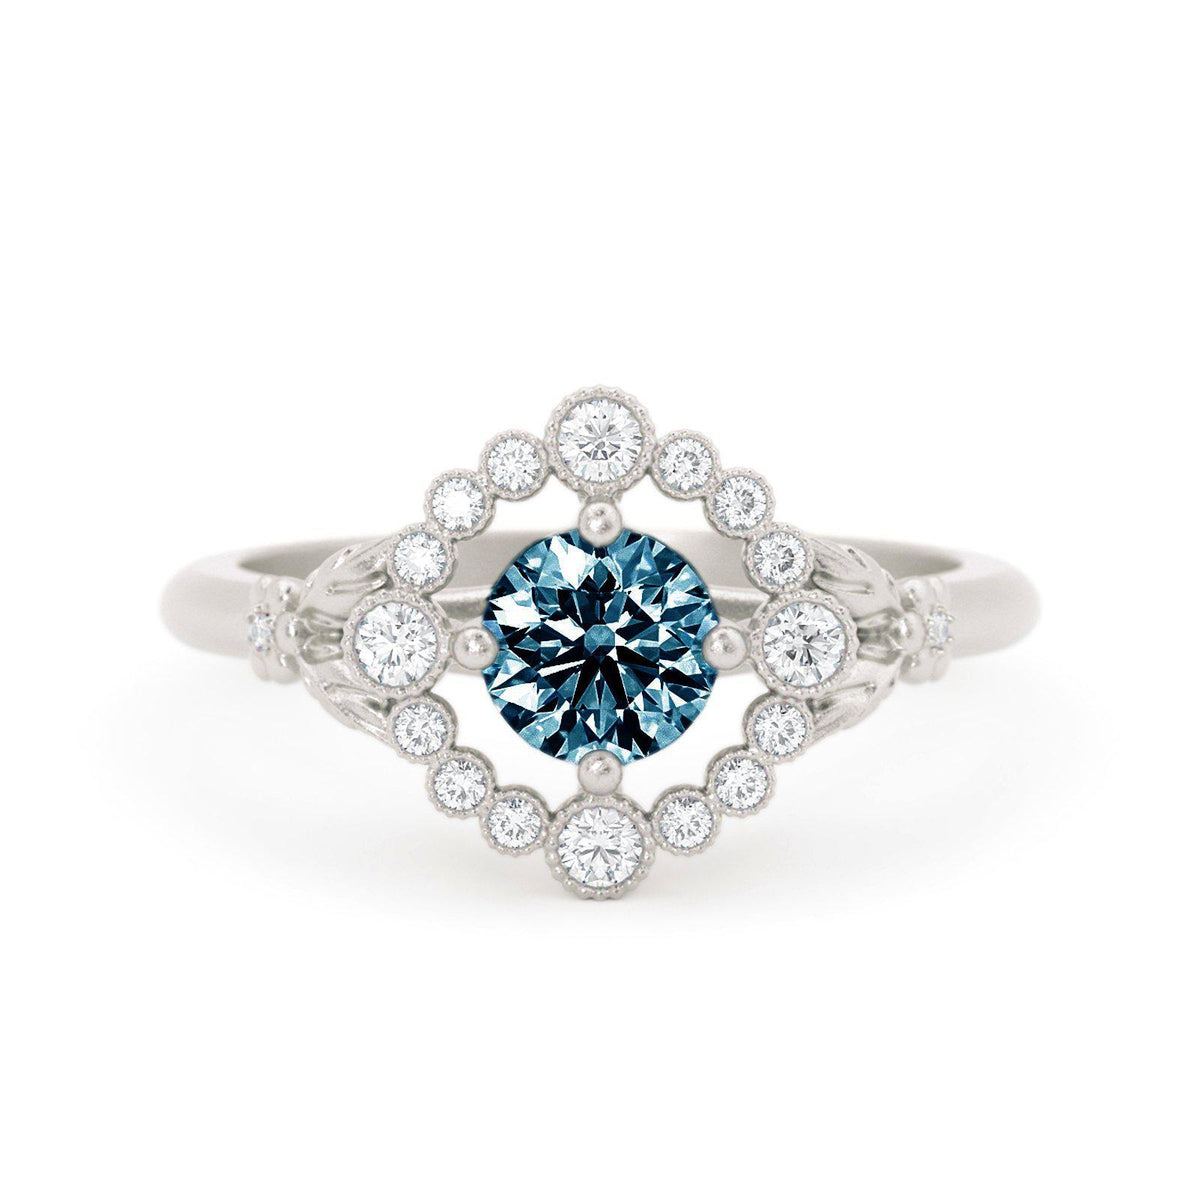 Scarlett Montana Sapphire Ring with Diamond Halo White Gold